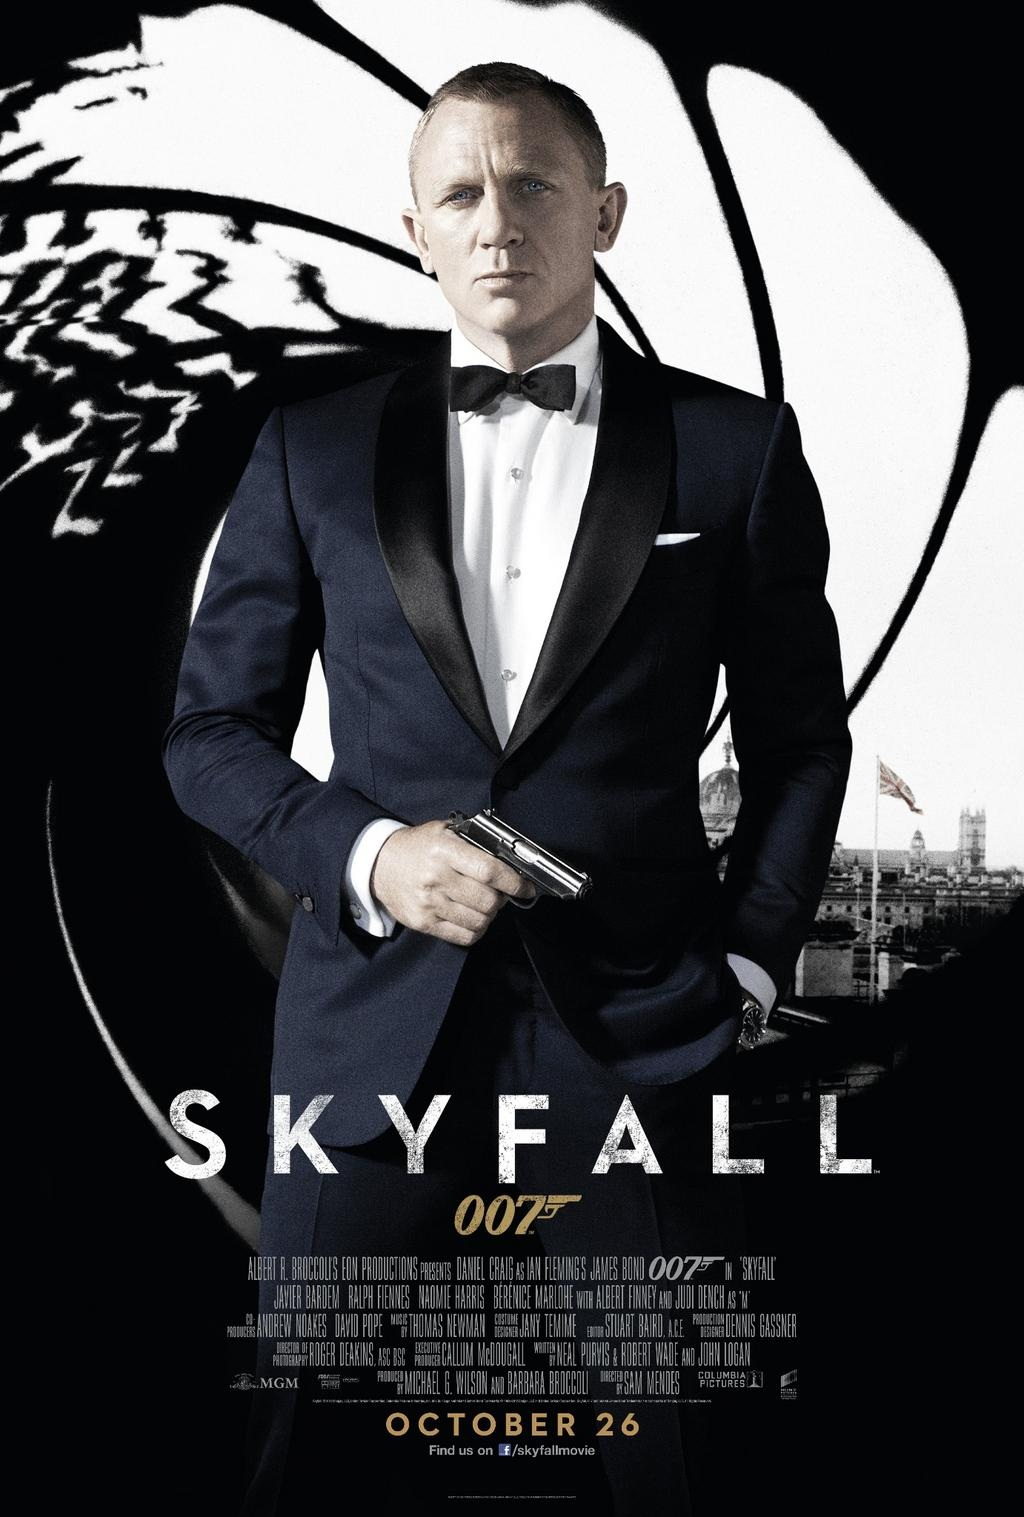 james bond 007 film recenzja plakat daniel craig